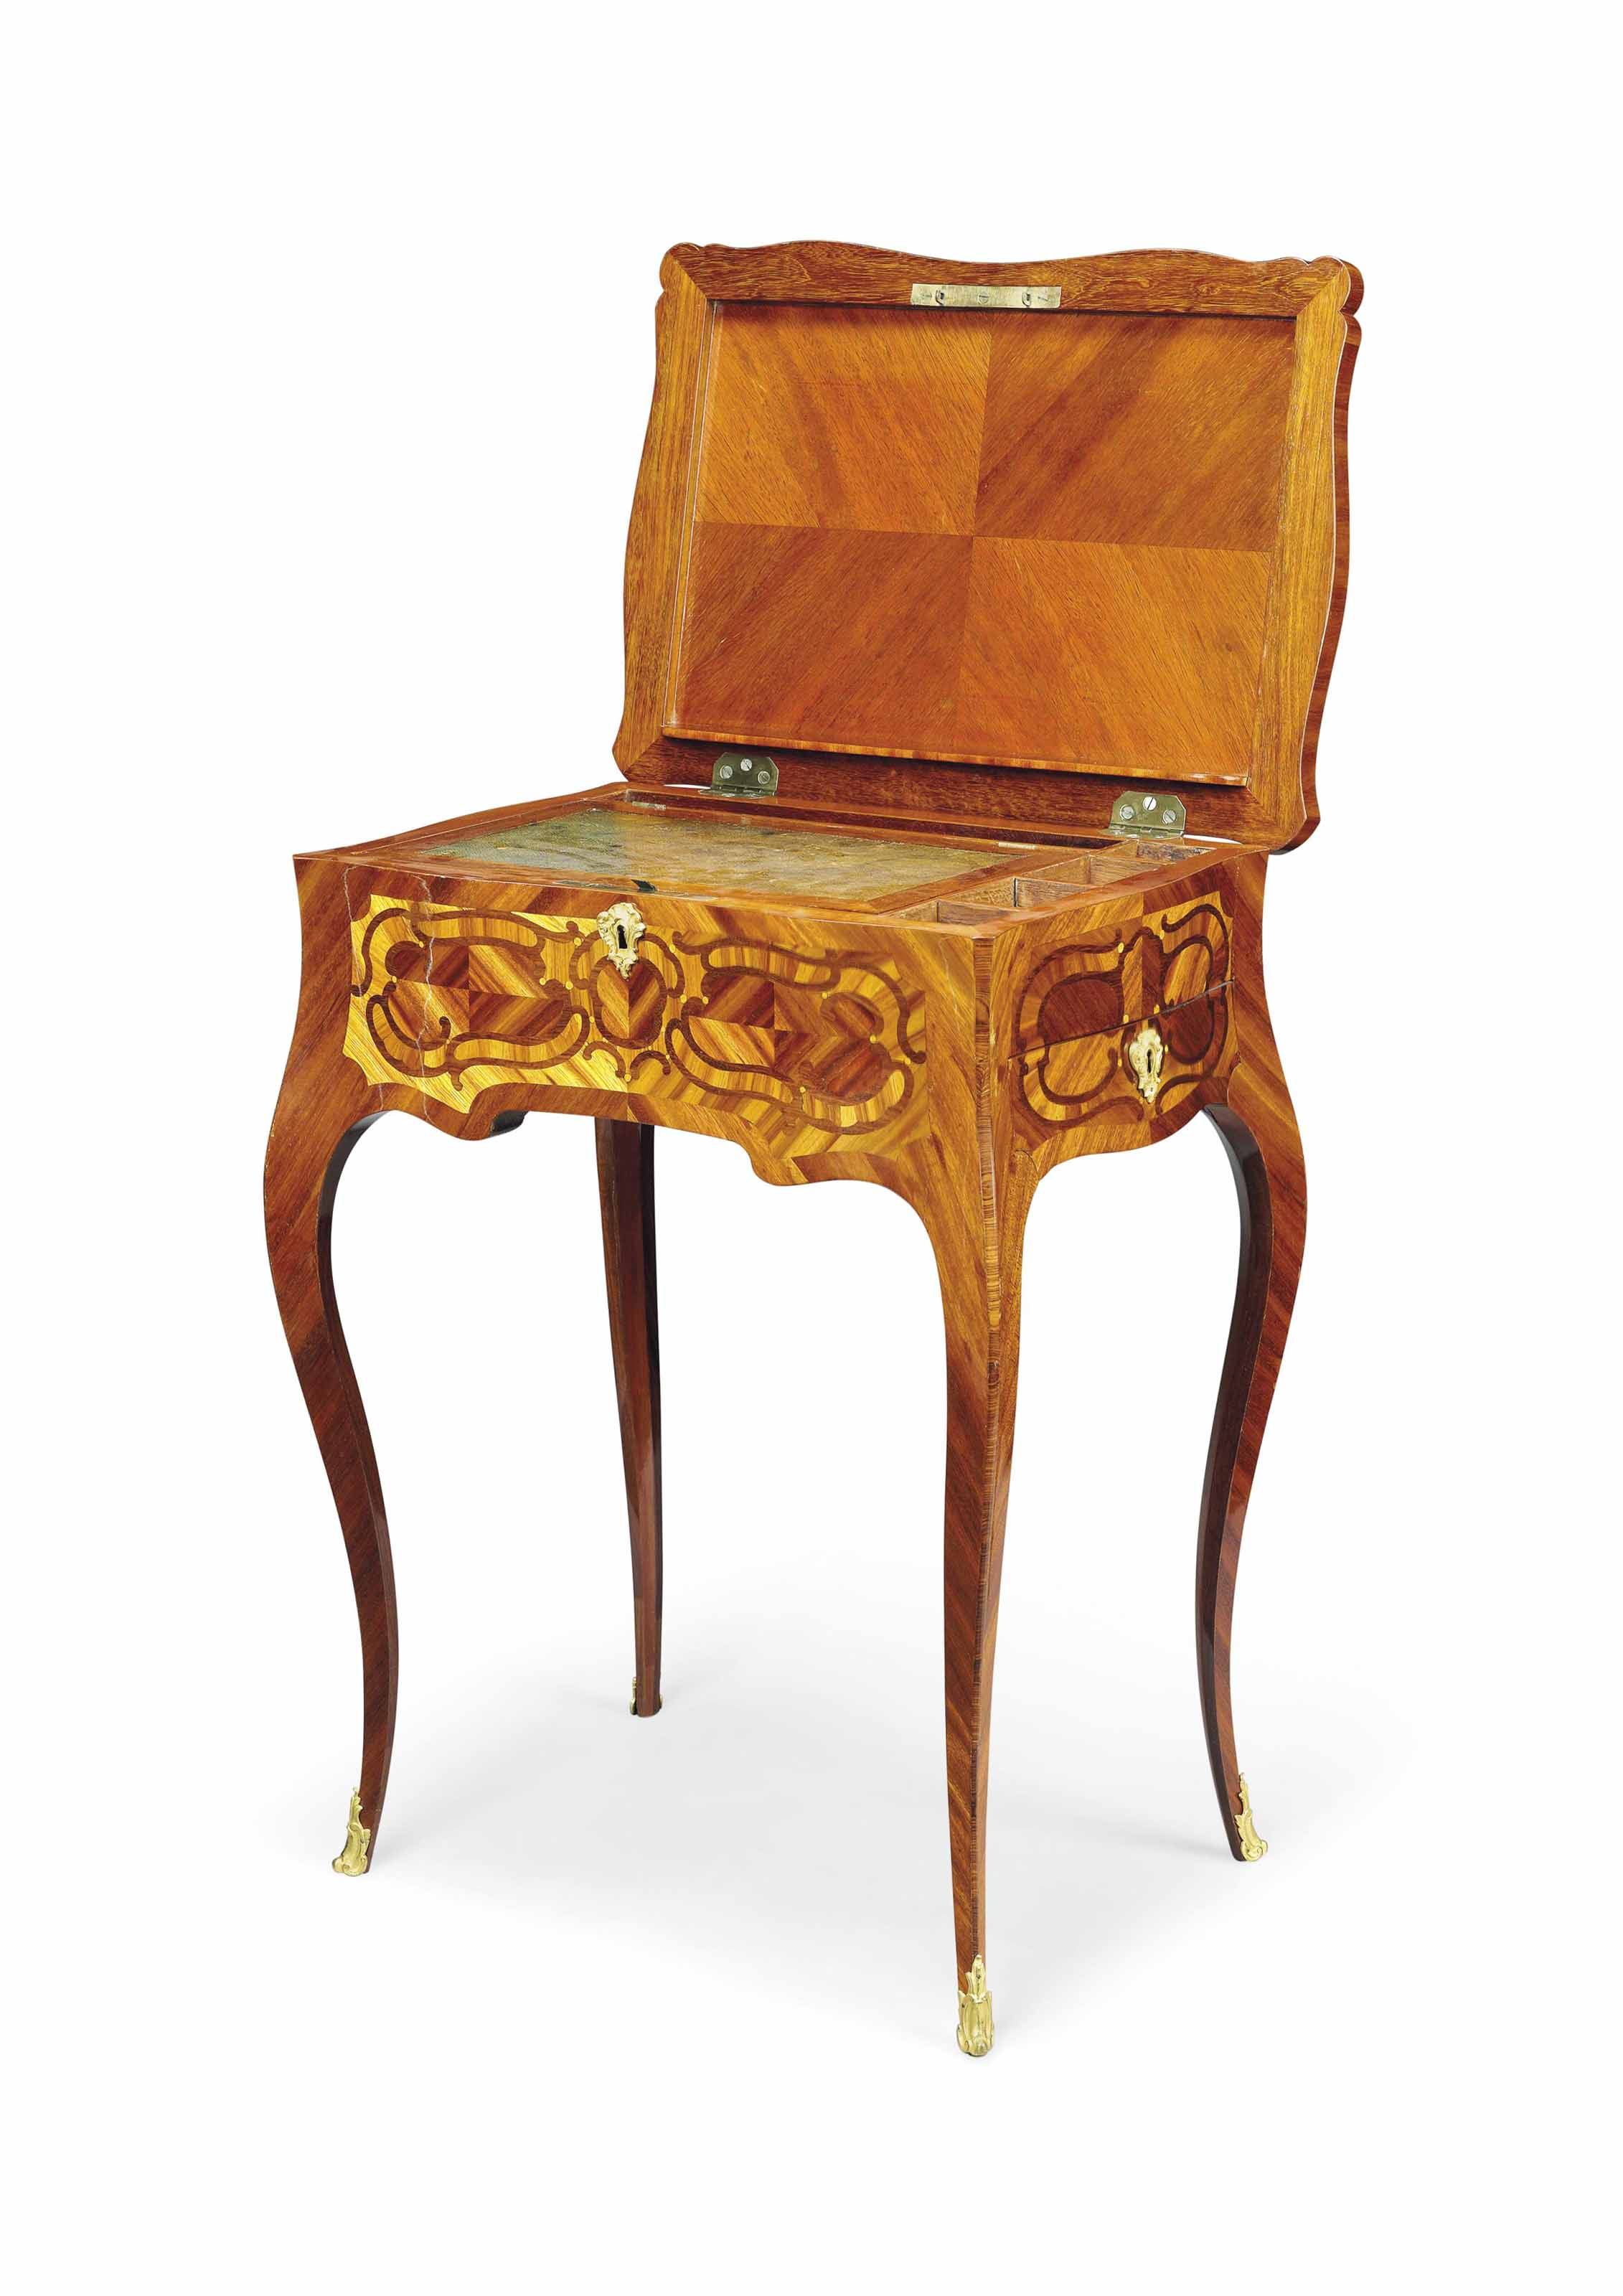 A LOUIS XV ORMOLU-MOUNTED TULIPWOOD, BOIS SATINÉ, AMARANTH AND FLORAL MARQUETRY WRITING TABLE